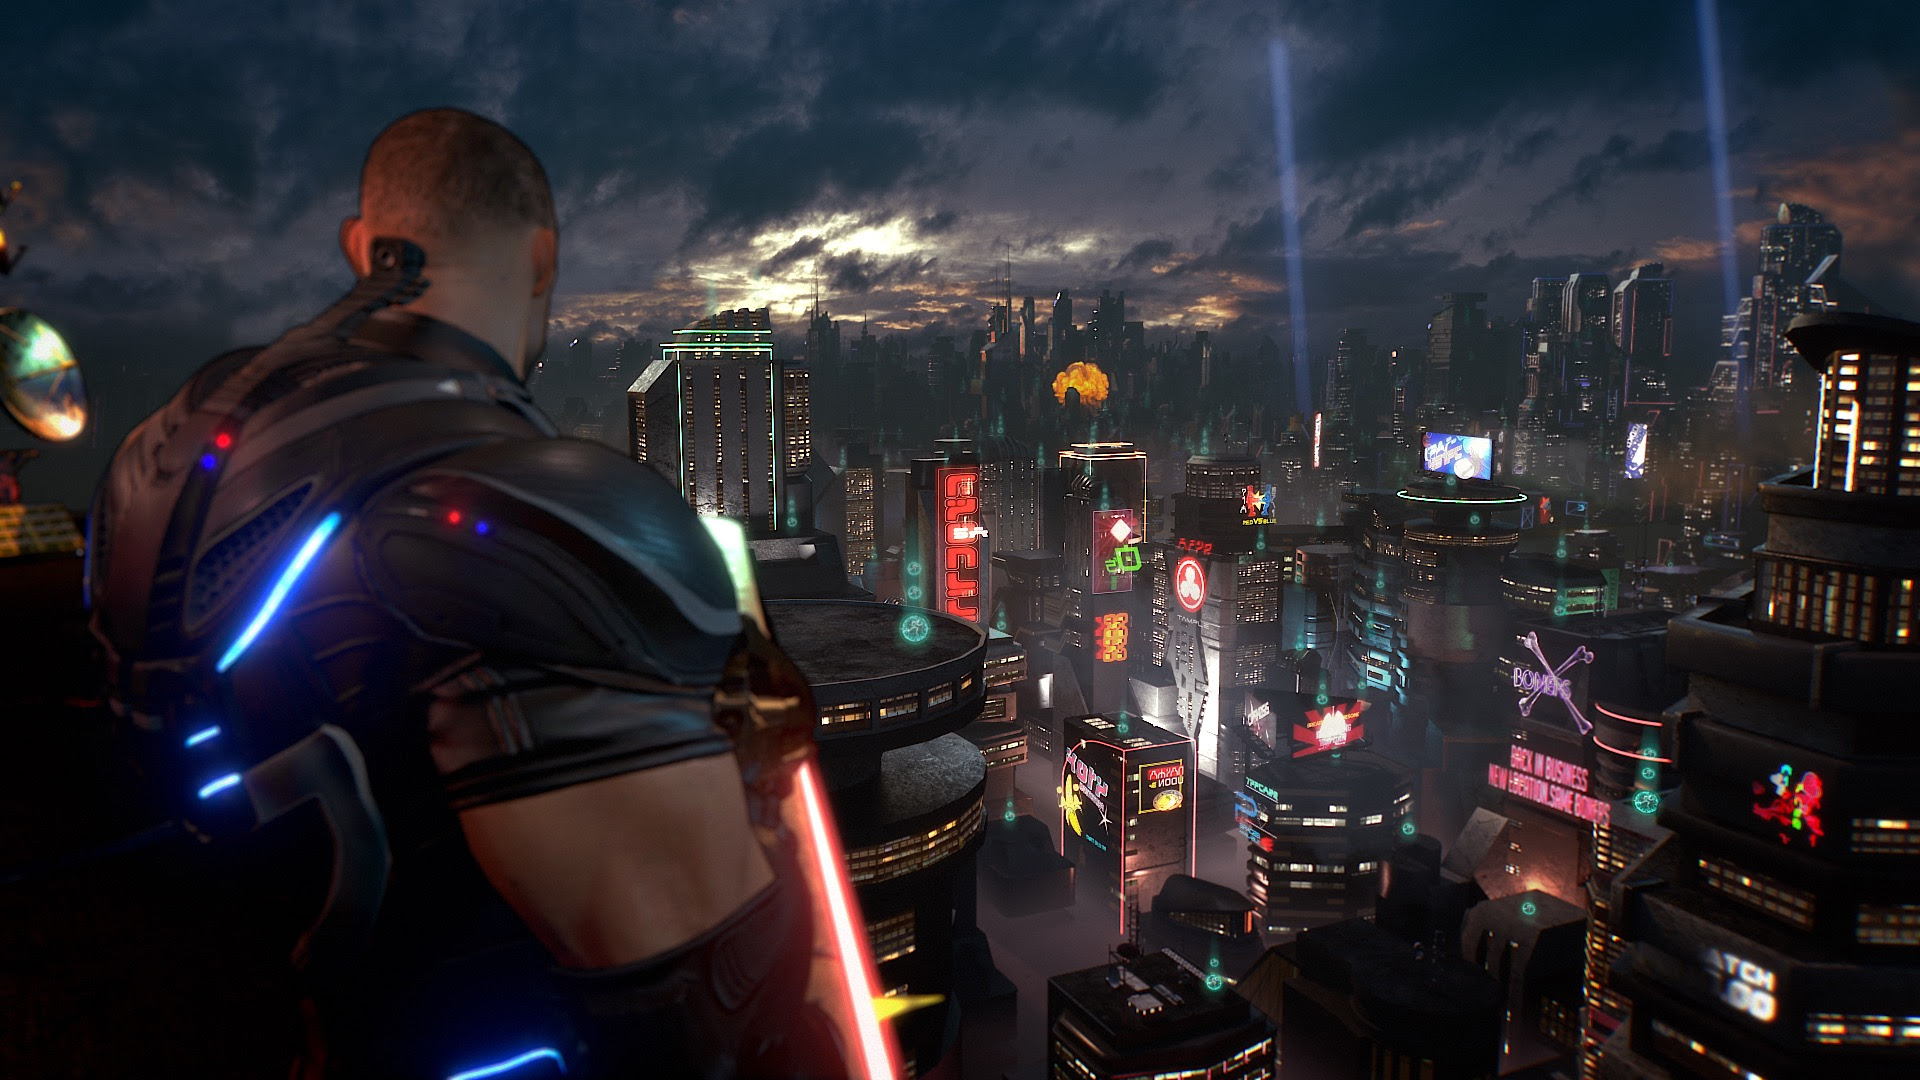 It's 2017 and Crackdown 3 is stuck in 2007 screenshot